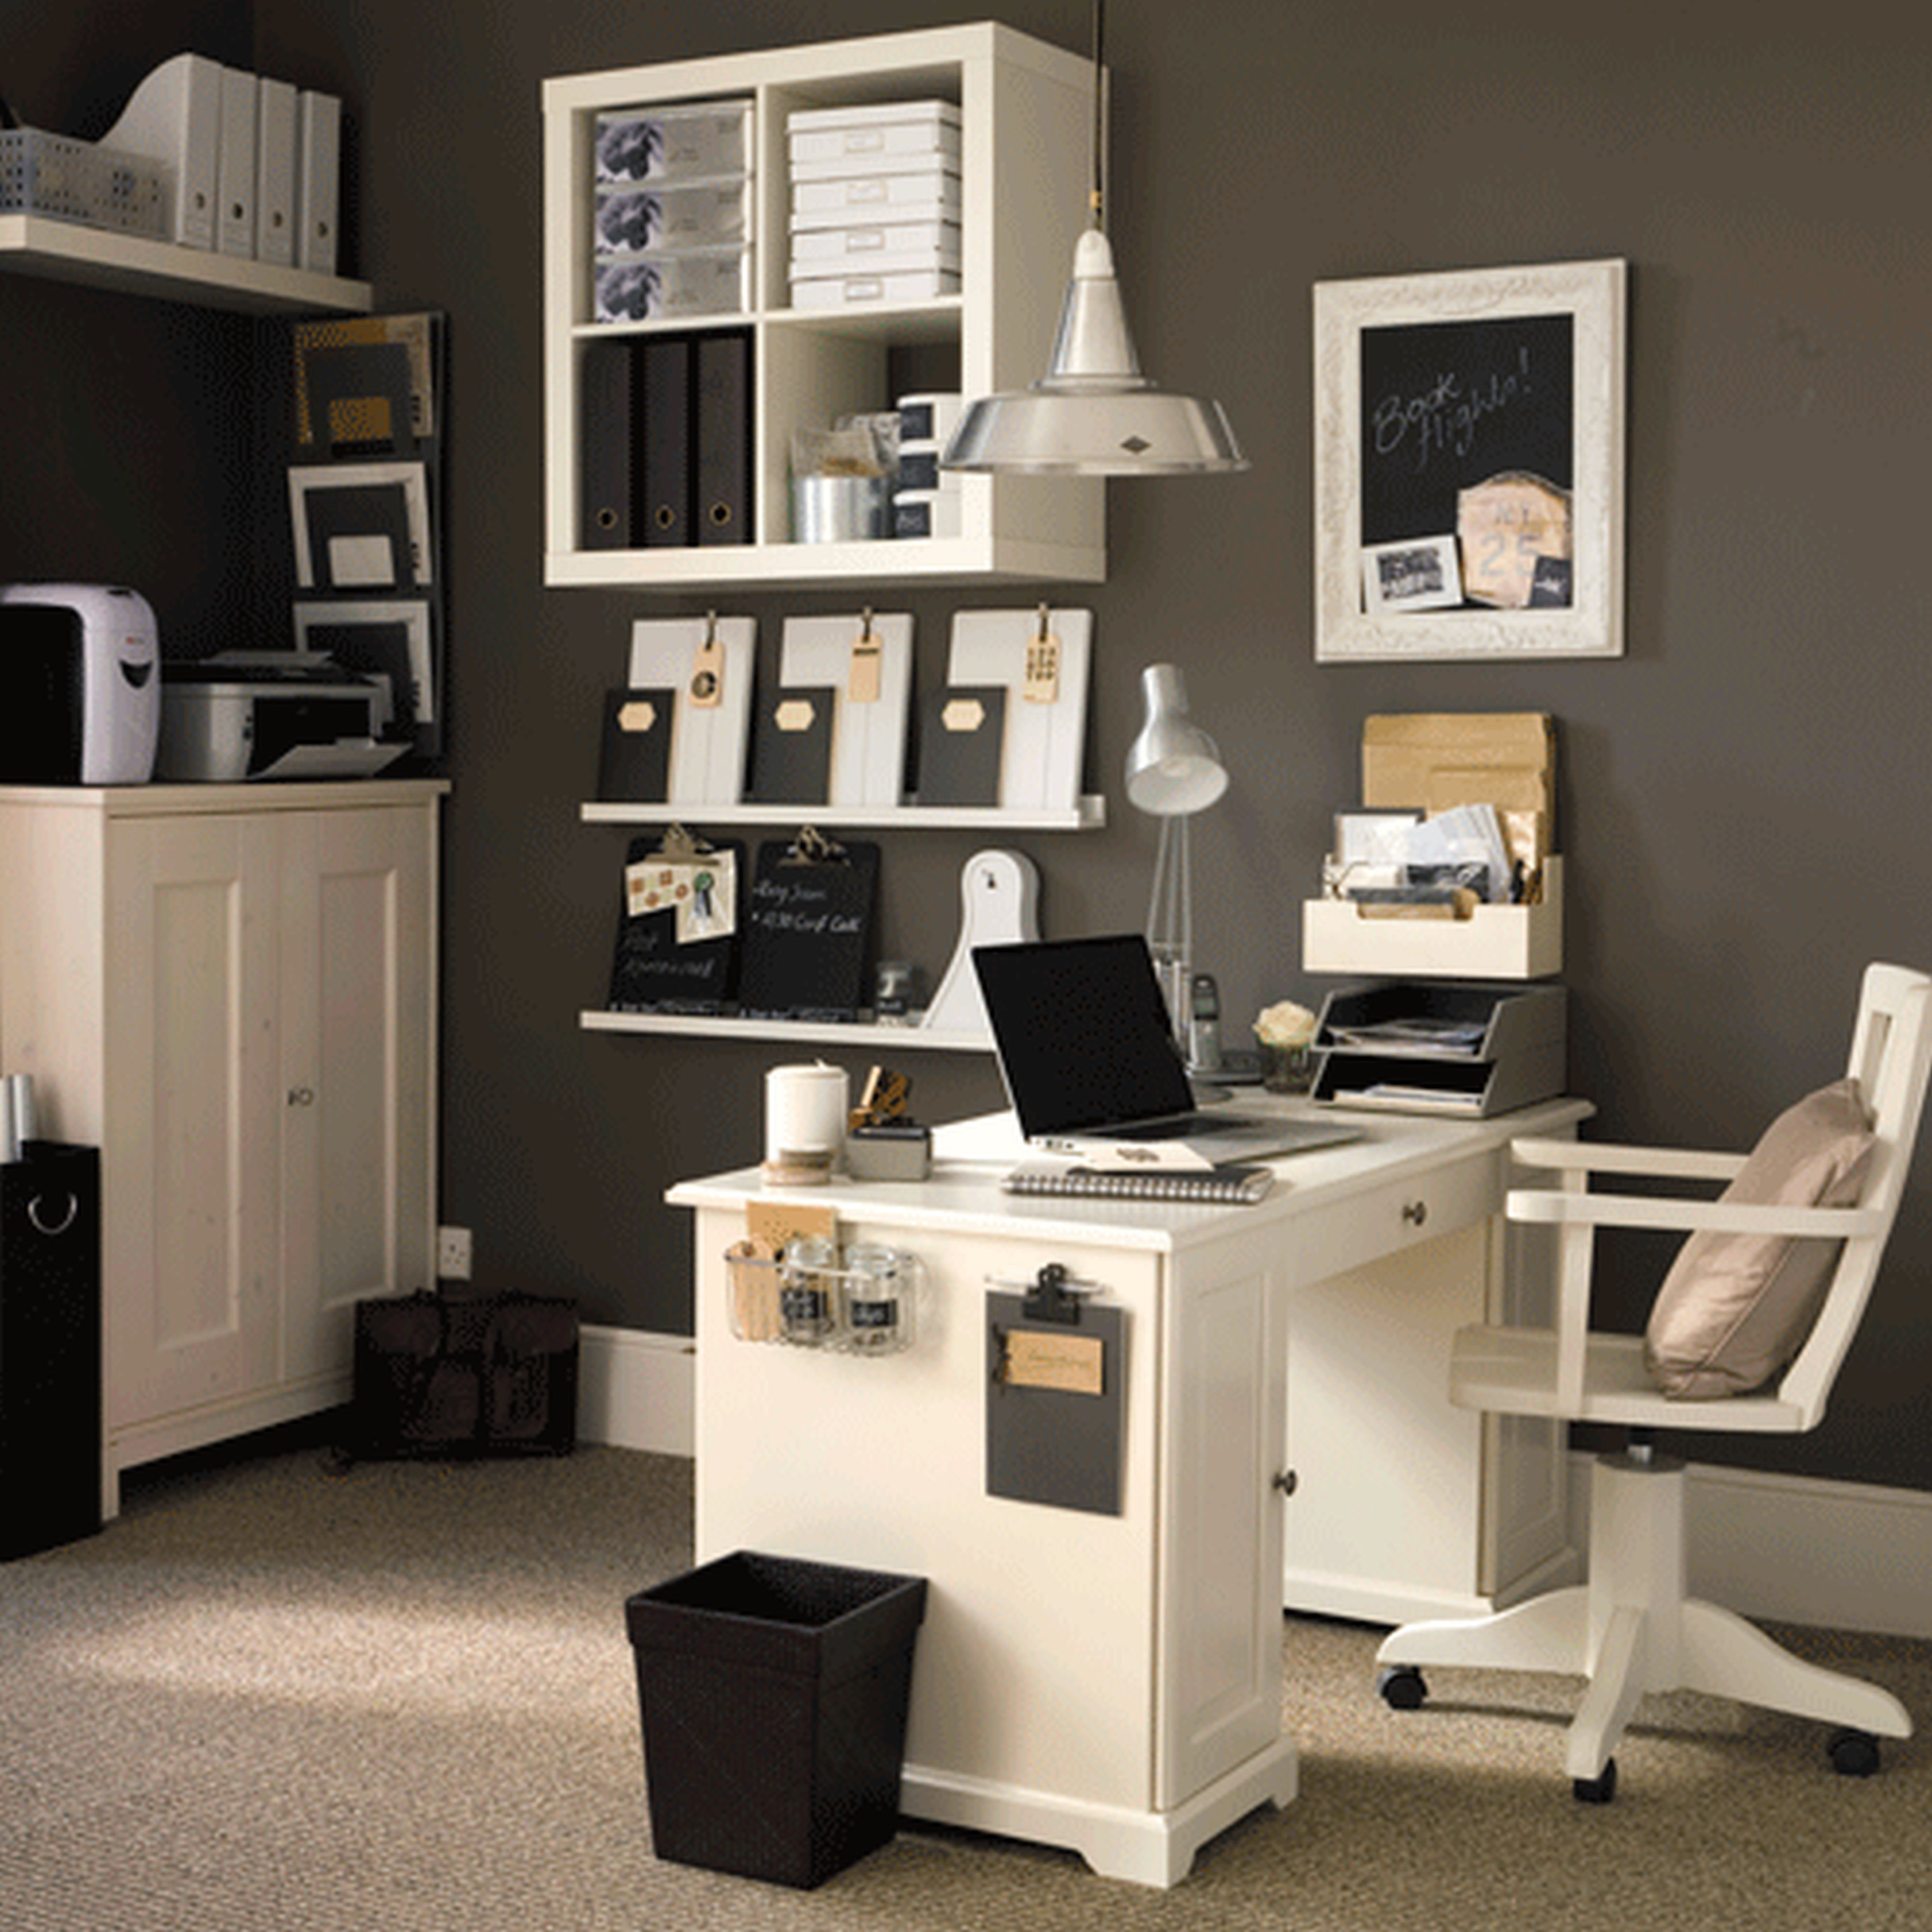 Best ideas about Small Office Furniture . Save or Pin Small Home fice Furniture Ideas Home Design Ideas Now.